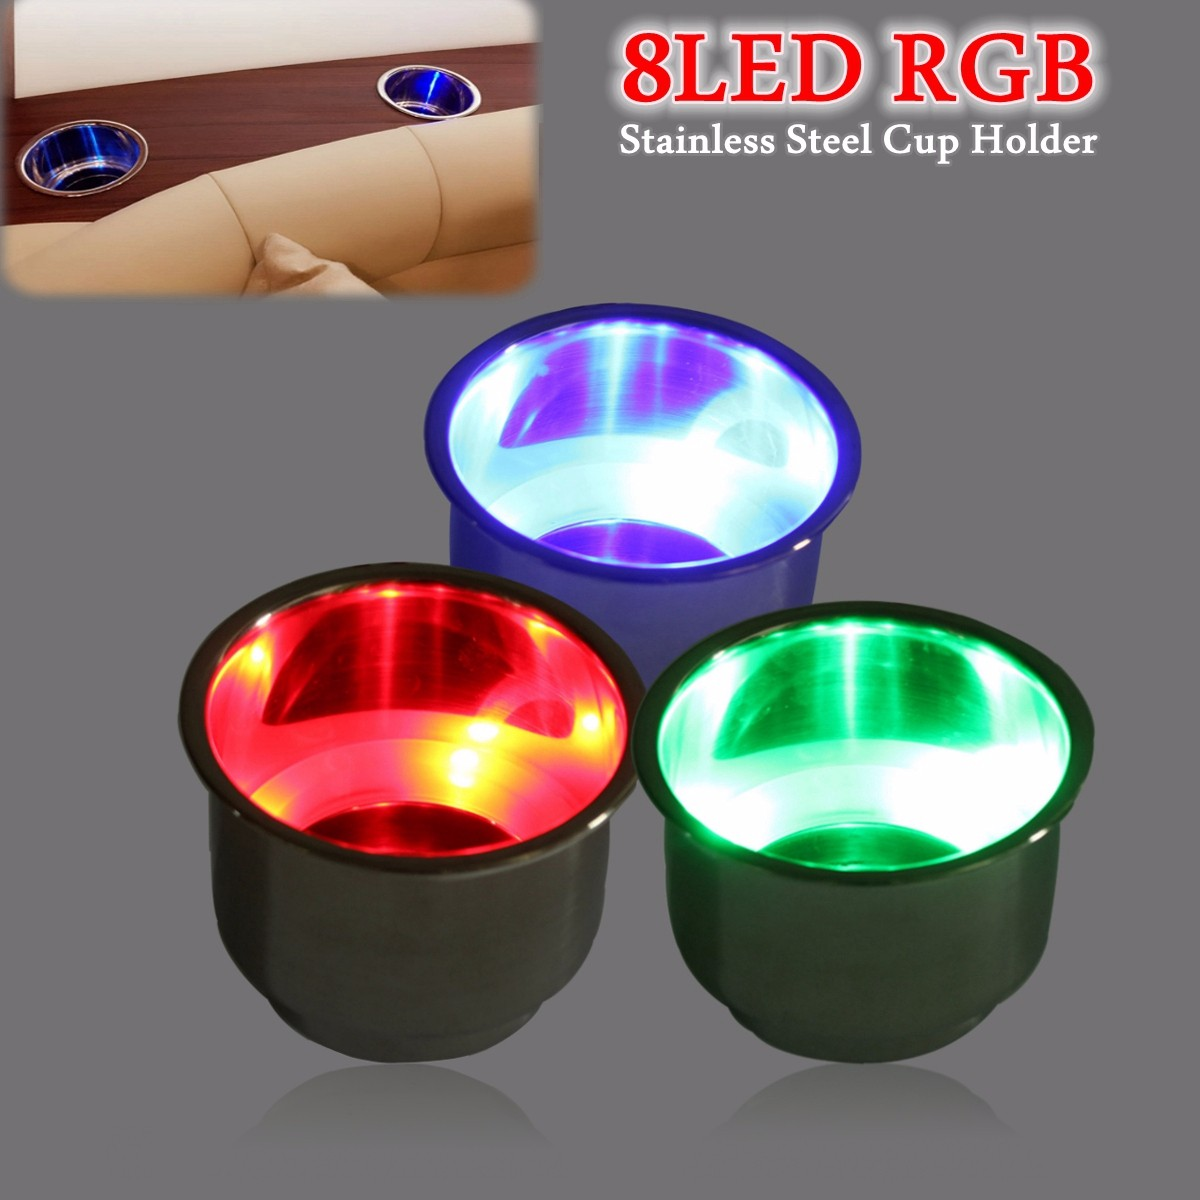 8 led rgb recessed stainless steel cup drink holder for marine boat car for camper in drinks. Black Bedroom Furniture Sets. Home Design Ideas